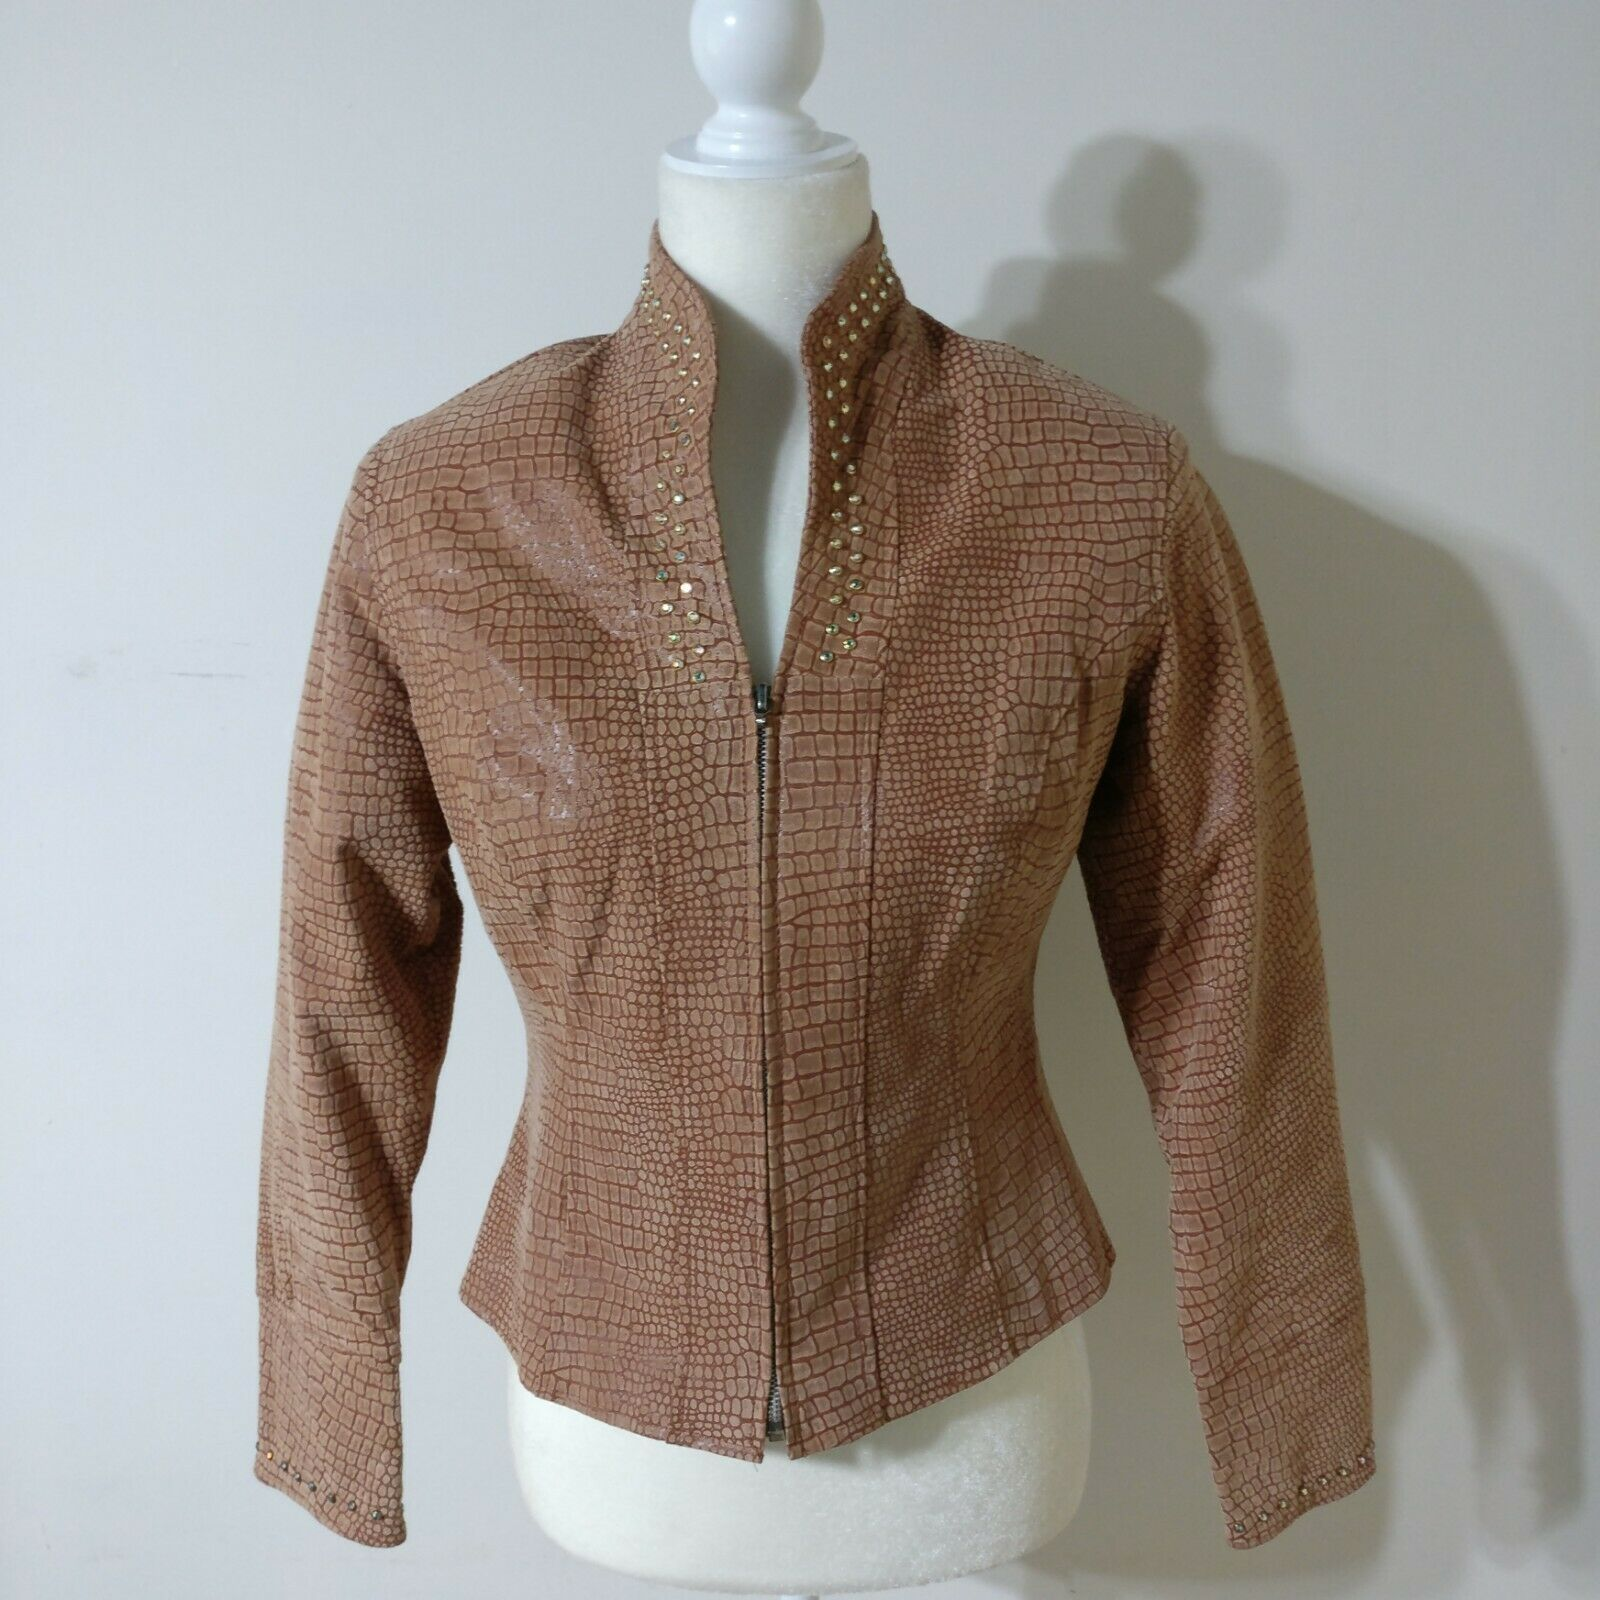 Western Pleasure equestre mostrare Jacket Tan Leather Crystal Embellished Smtutti